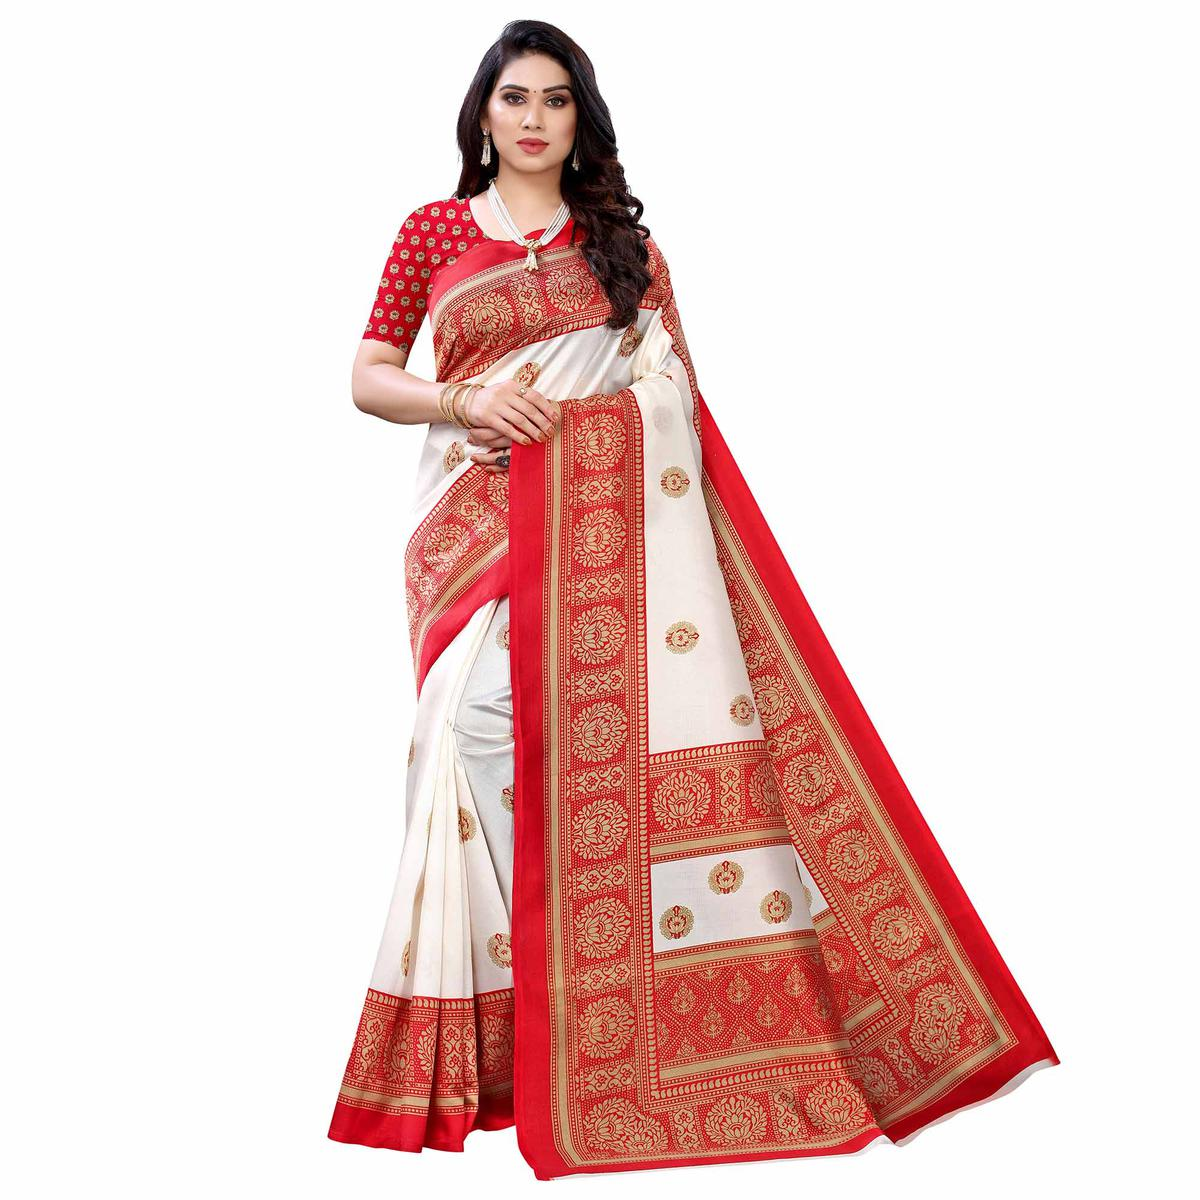 White - Red Casual Wear Printed Art Silk Saree With Border